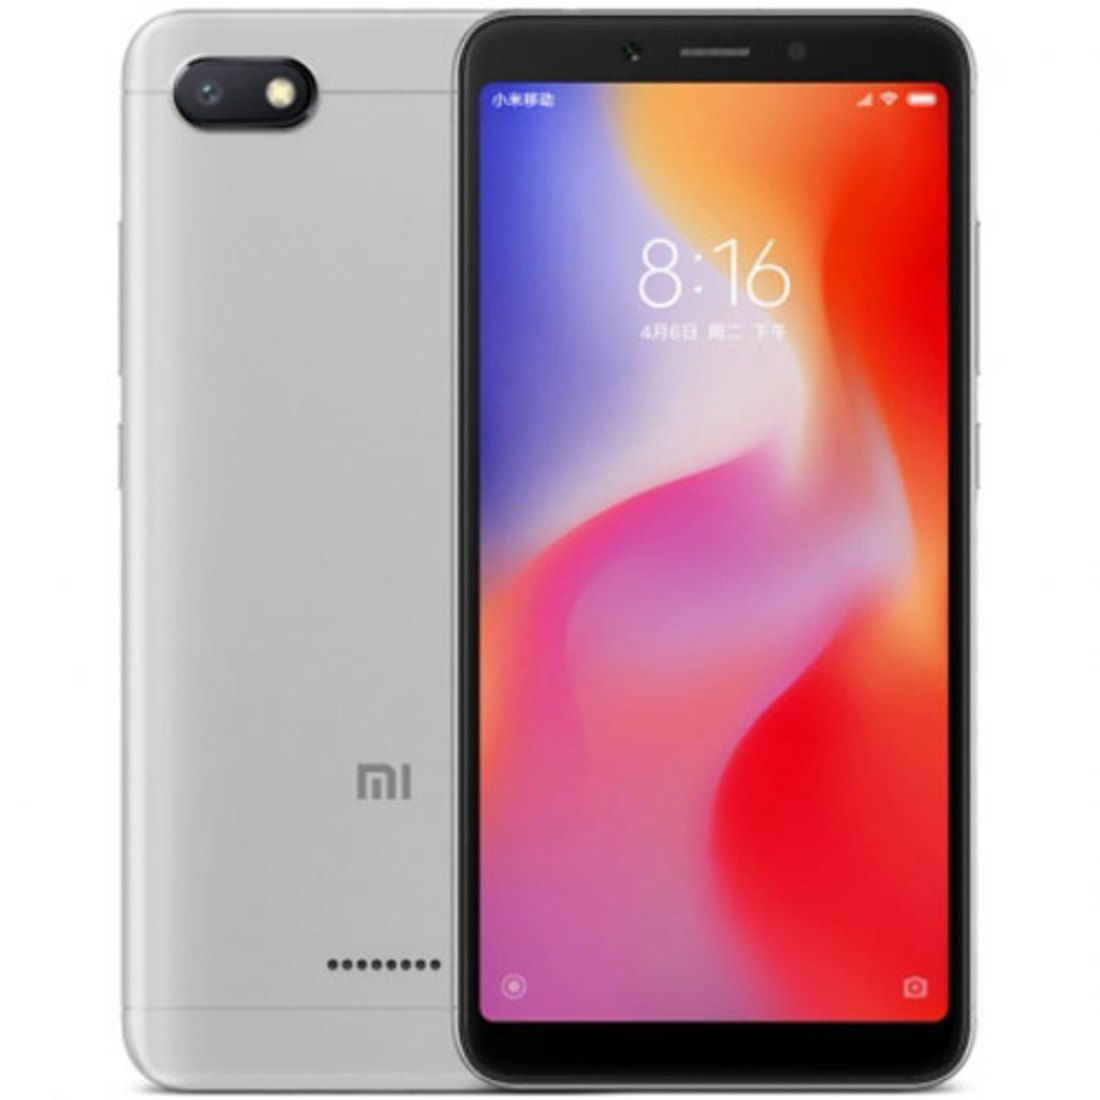 Smartphone Redmi 6A 2GB Ram Tela 5.45 16GB Camera 13MP - Prata